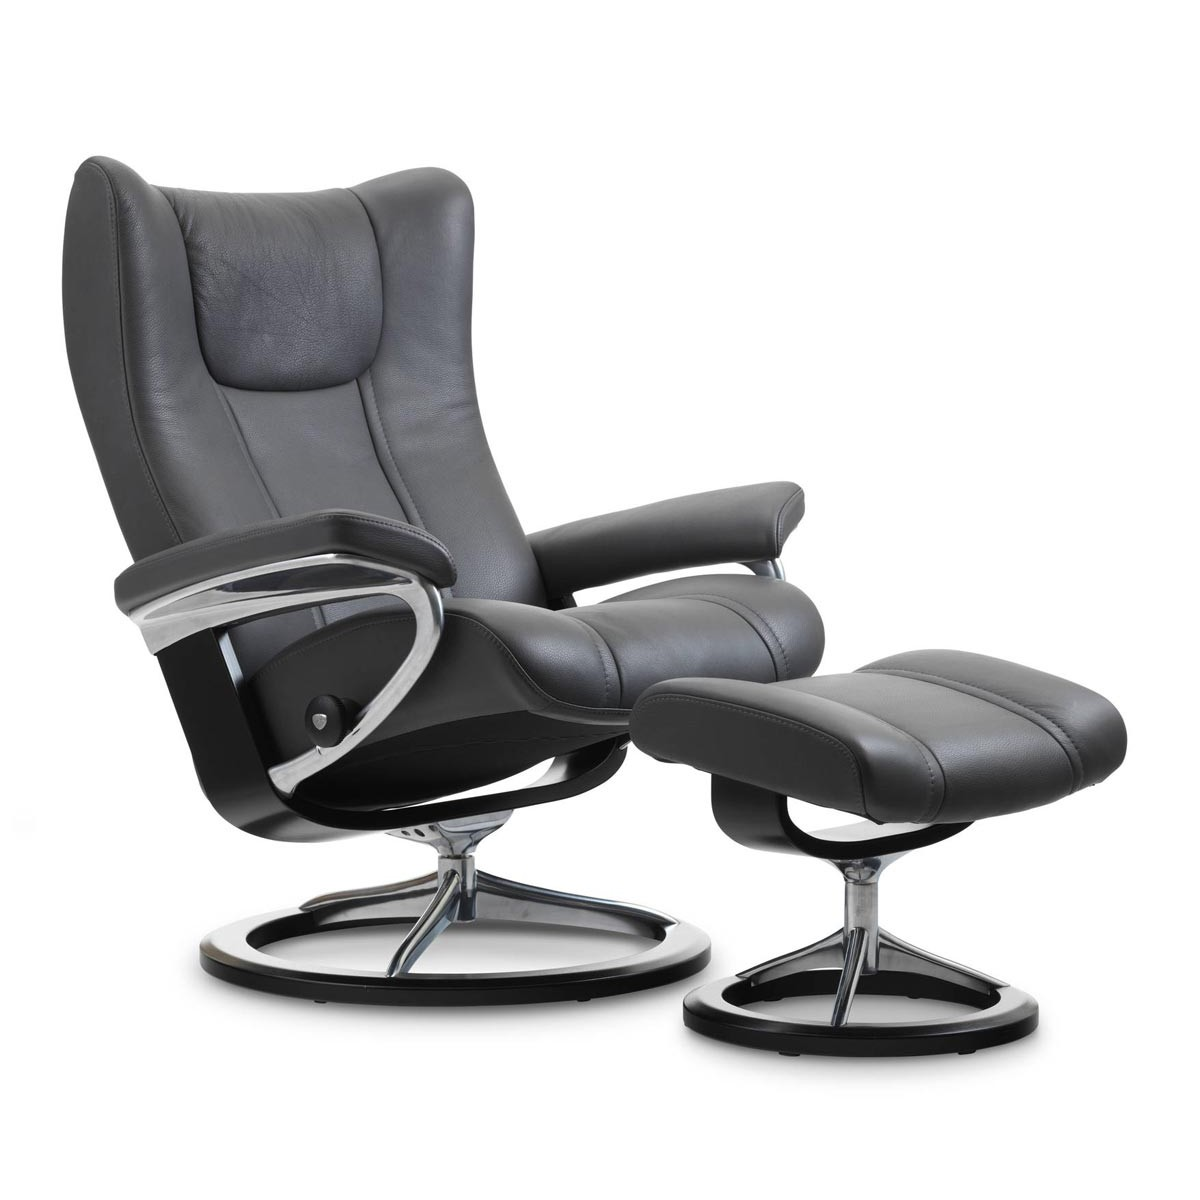 Stresless Stressless Wing Signature Recliner Ottoman